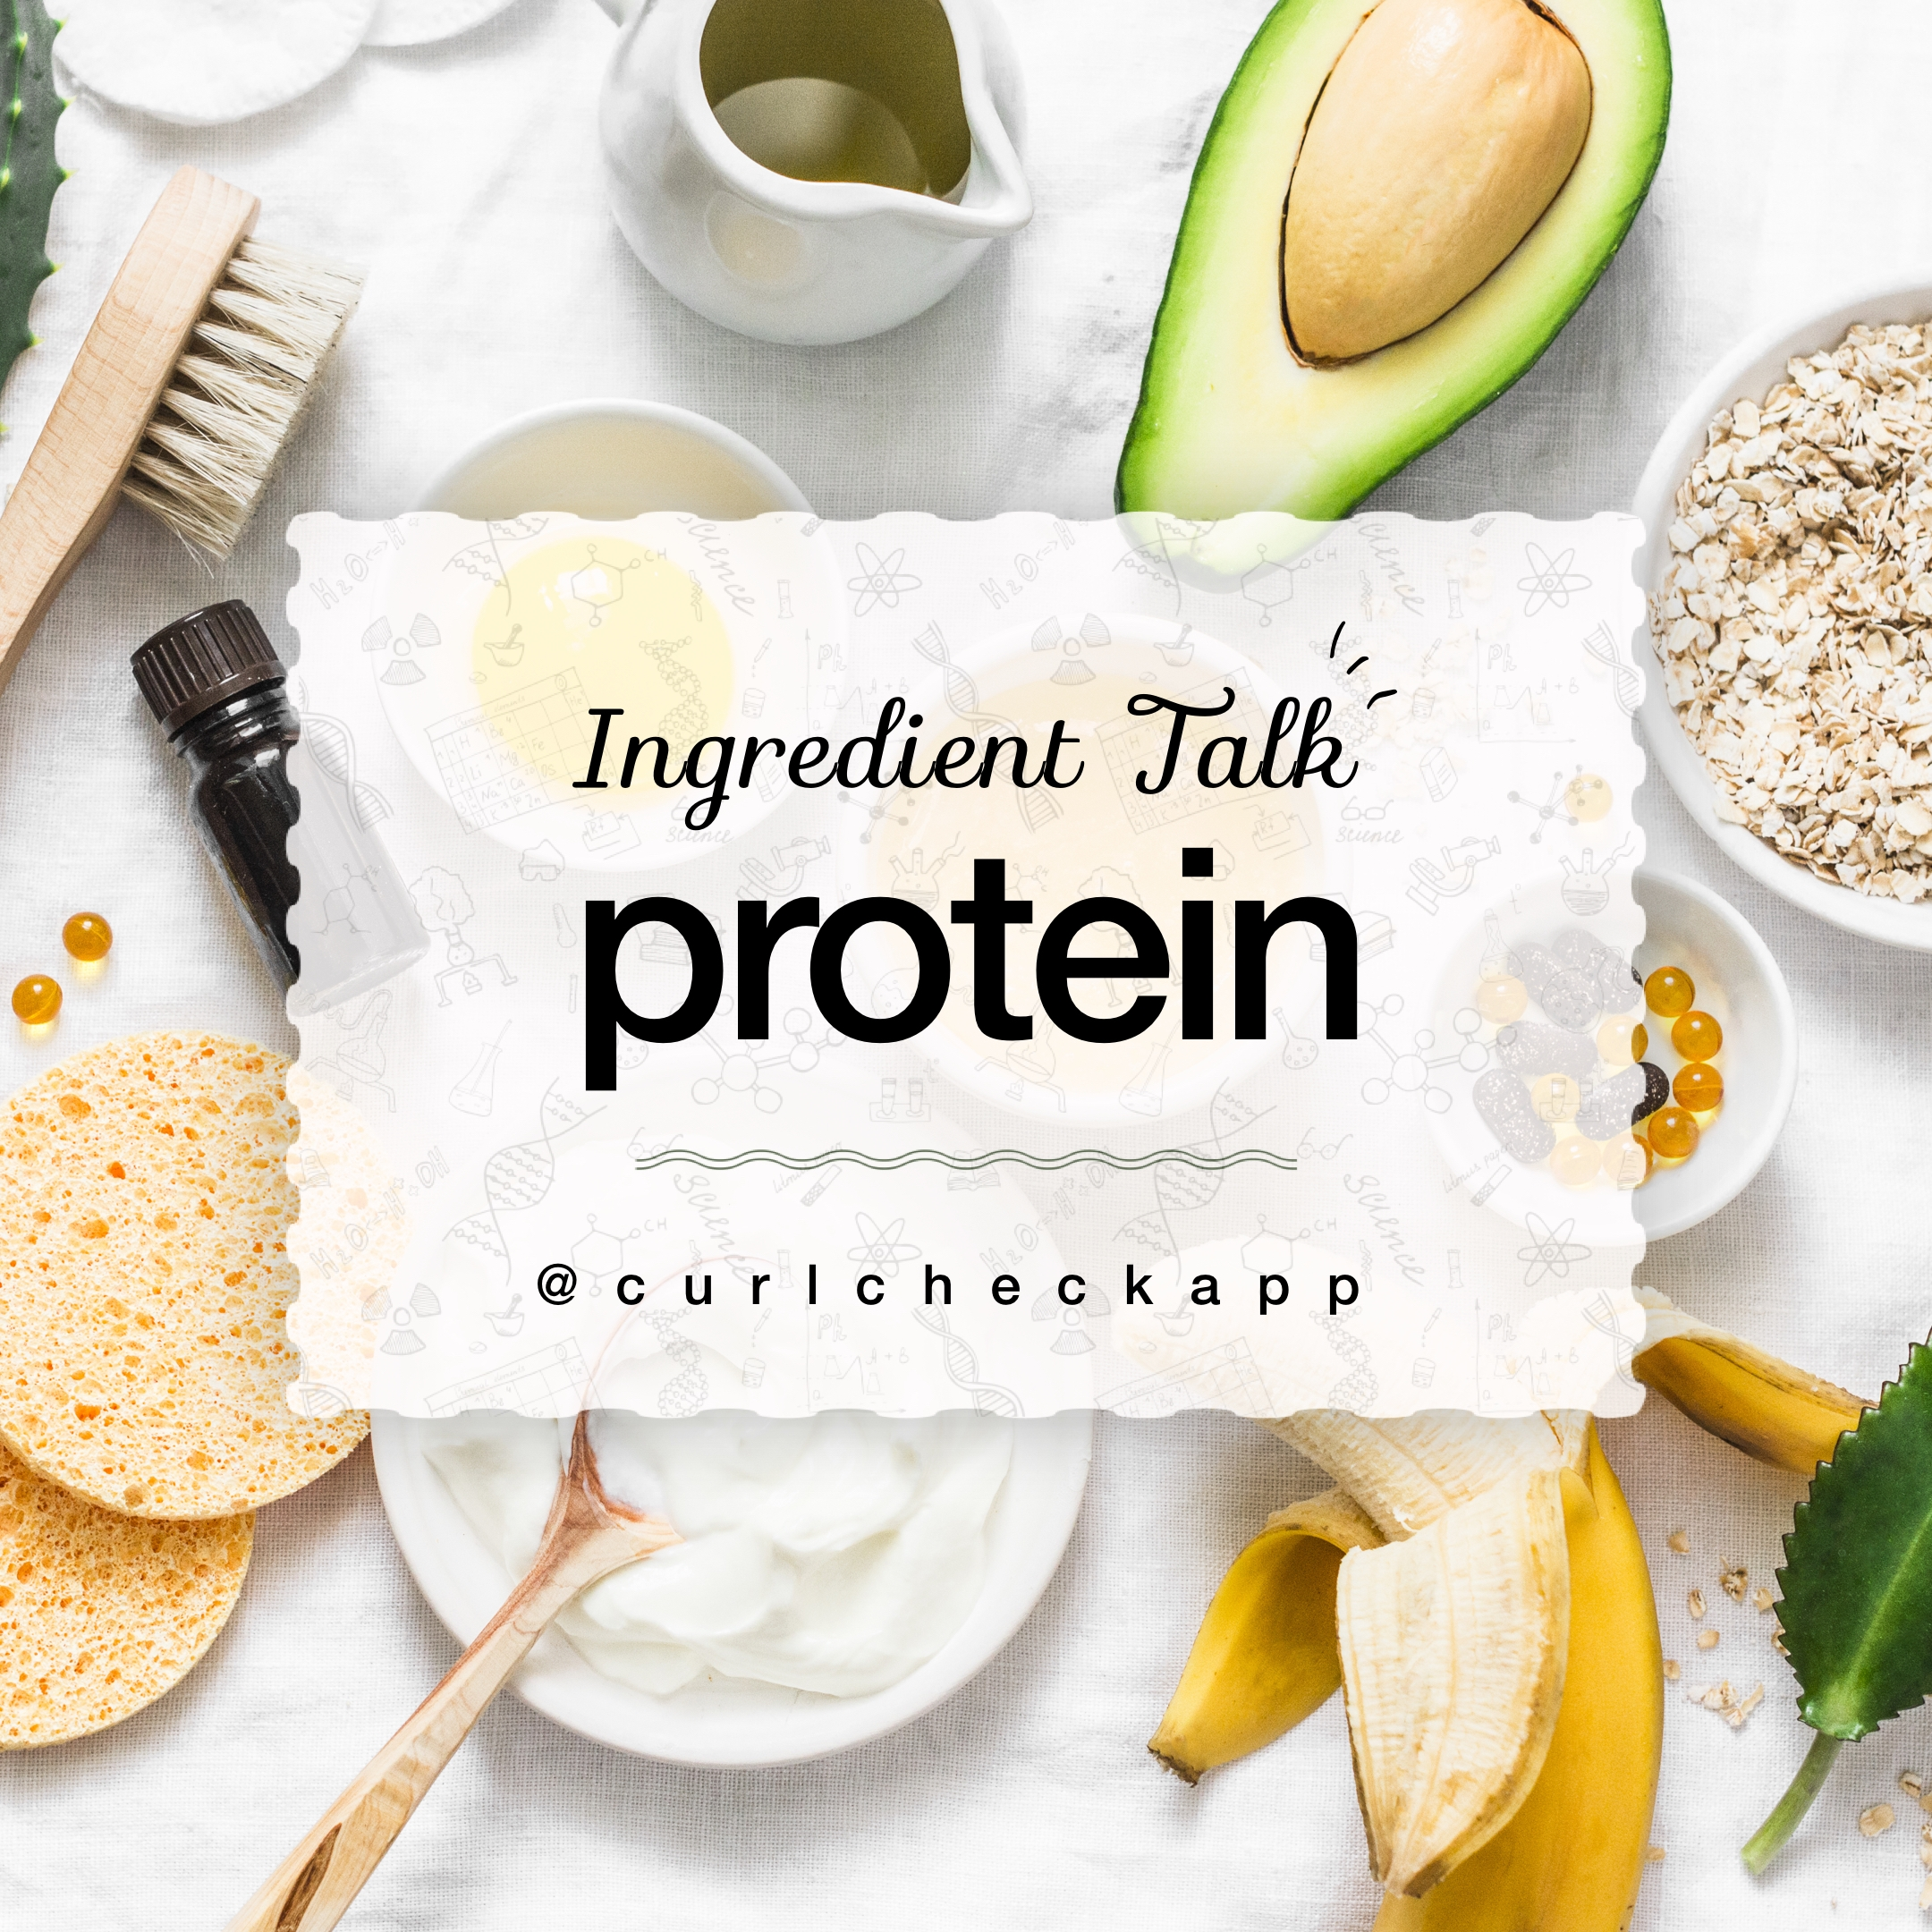 Does My Curly Hair Need Protein?